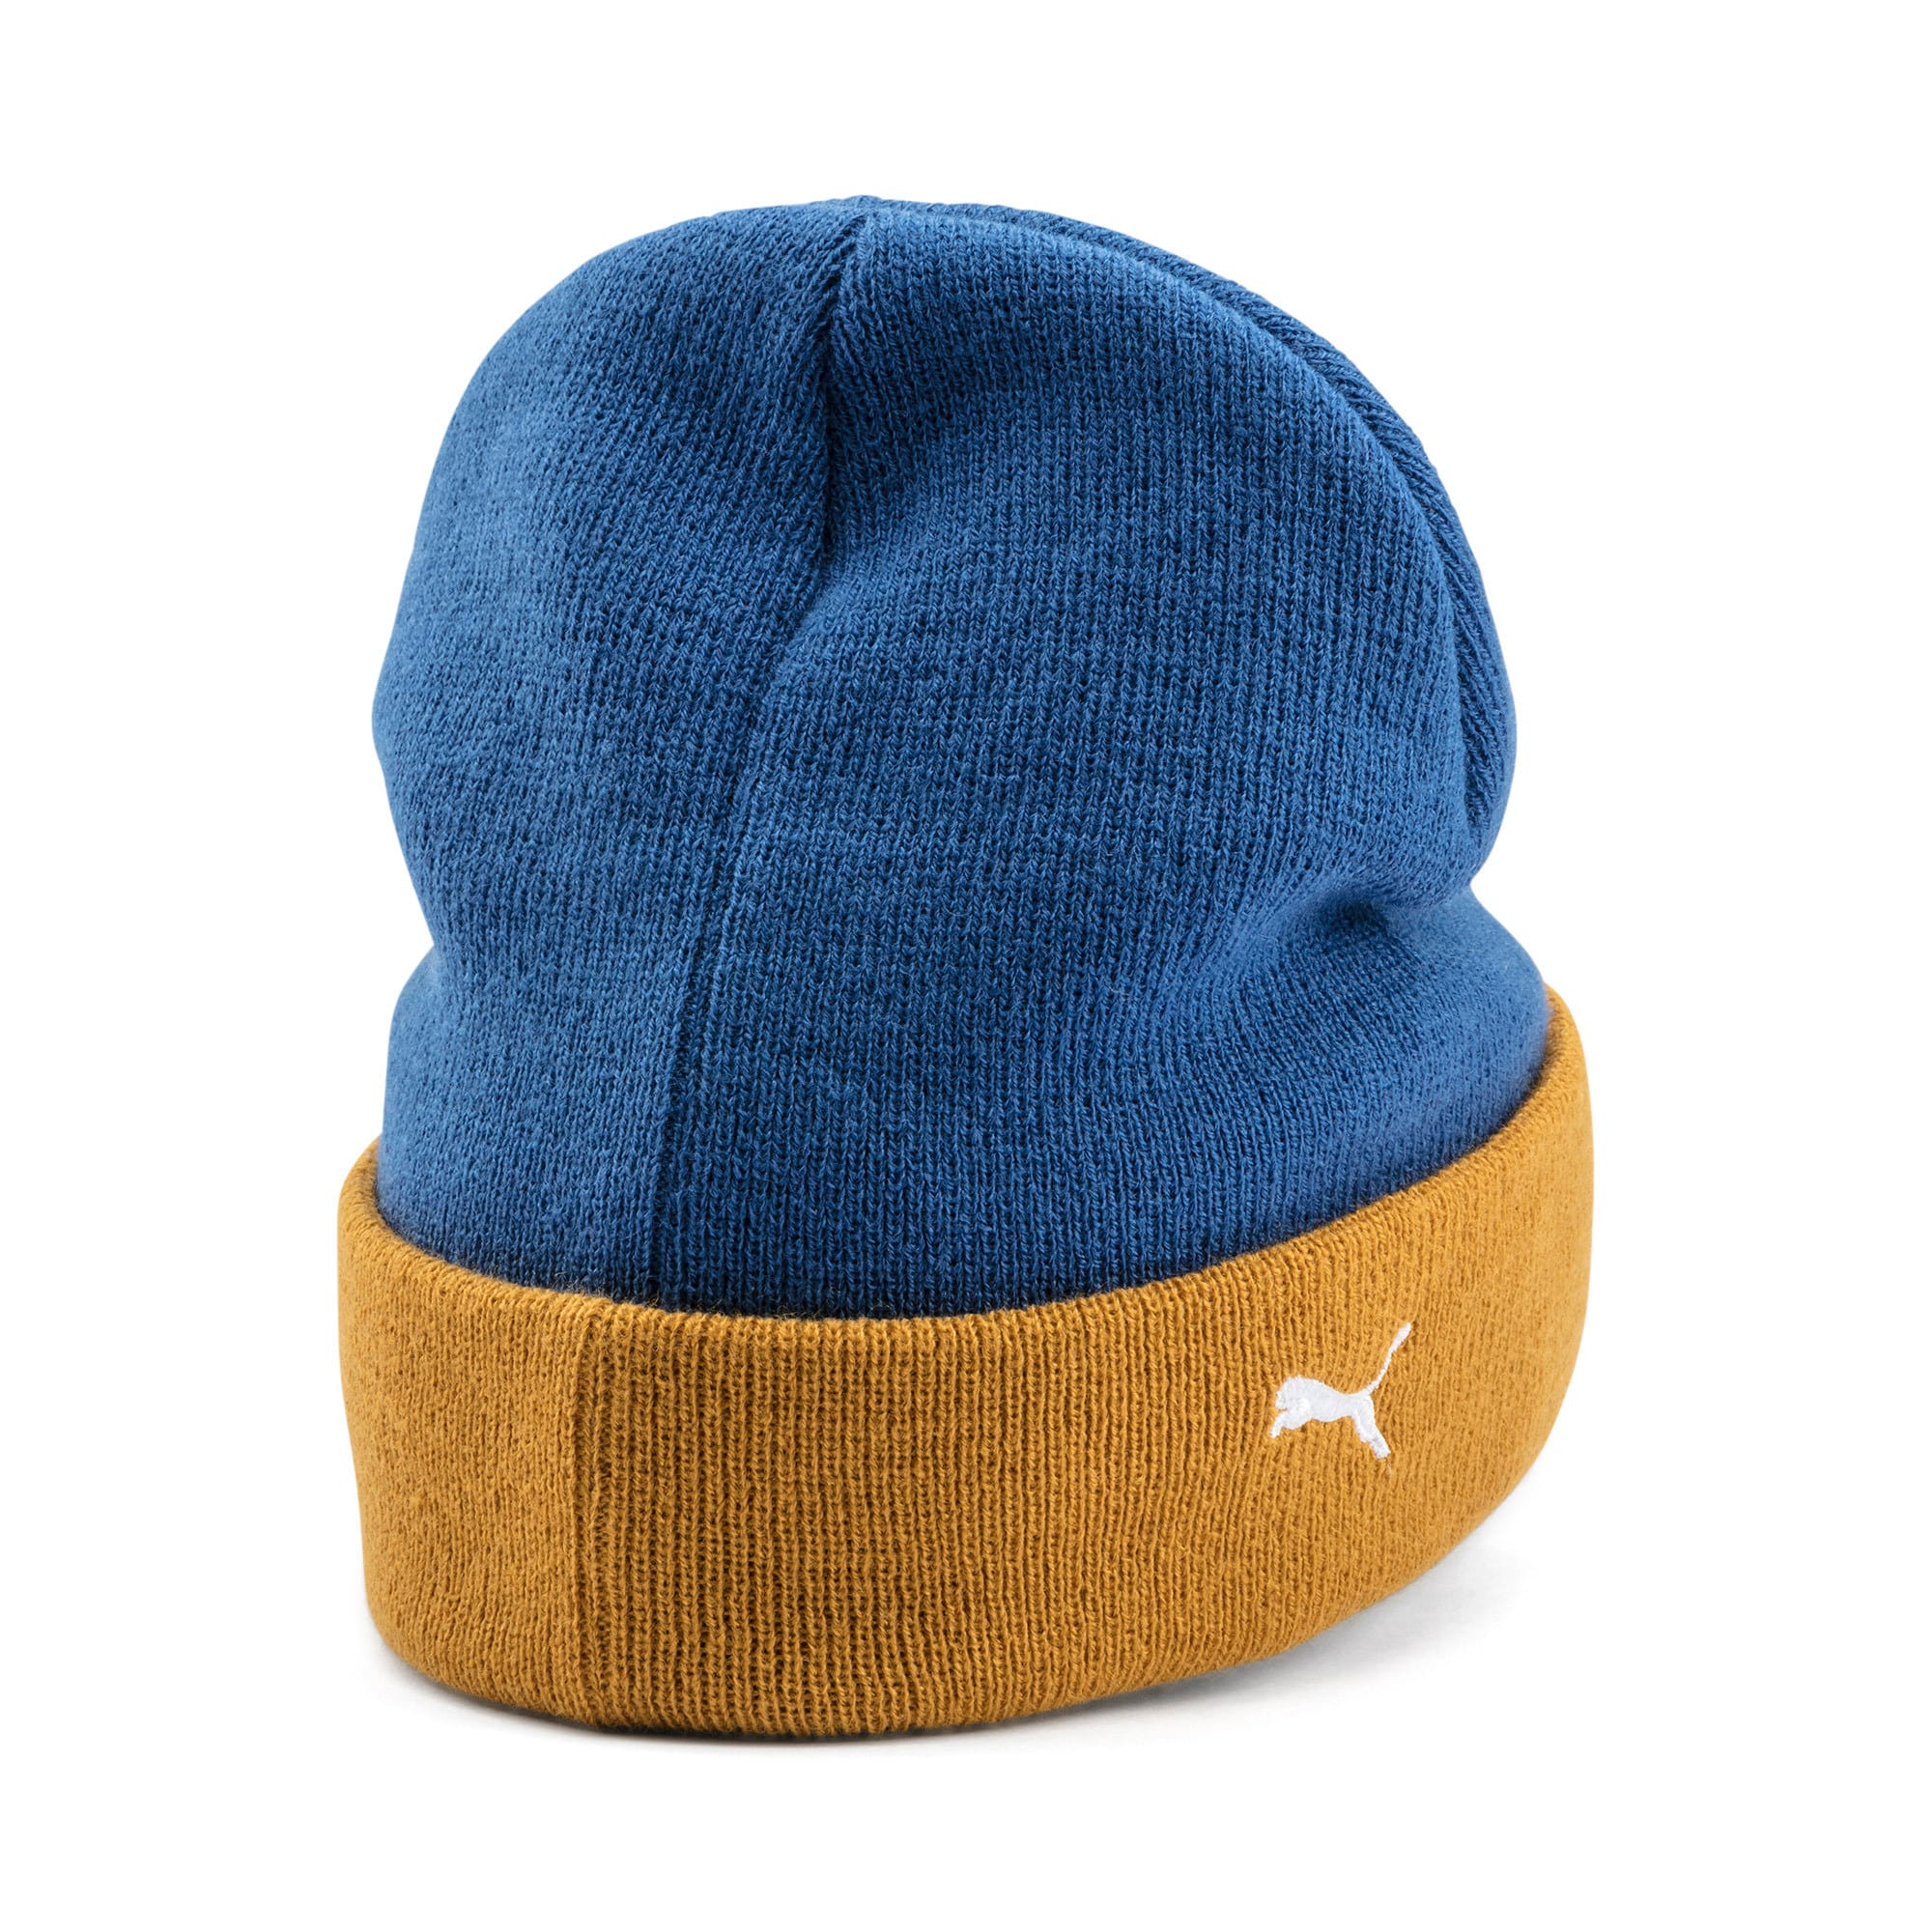 Thumbnail 4 of PUMA x TYAKASHA Beanie, Galaxy Blue-Buckthorn Brown, medium